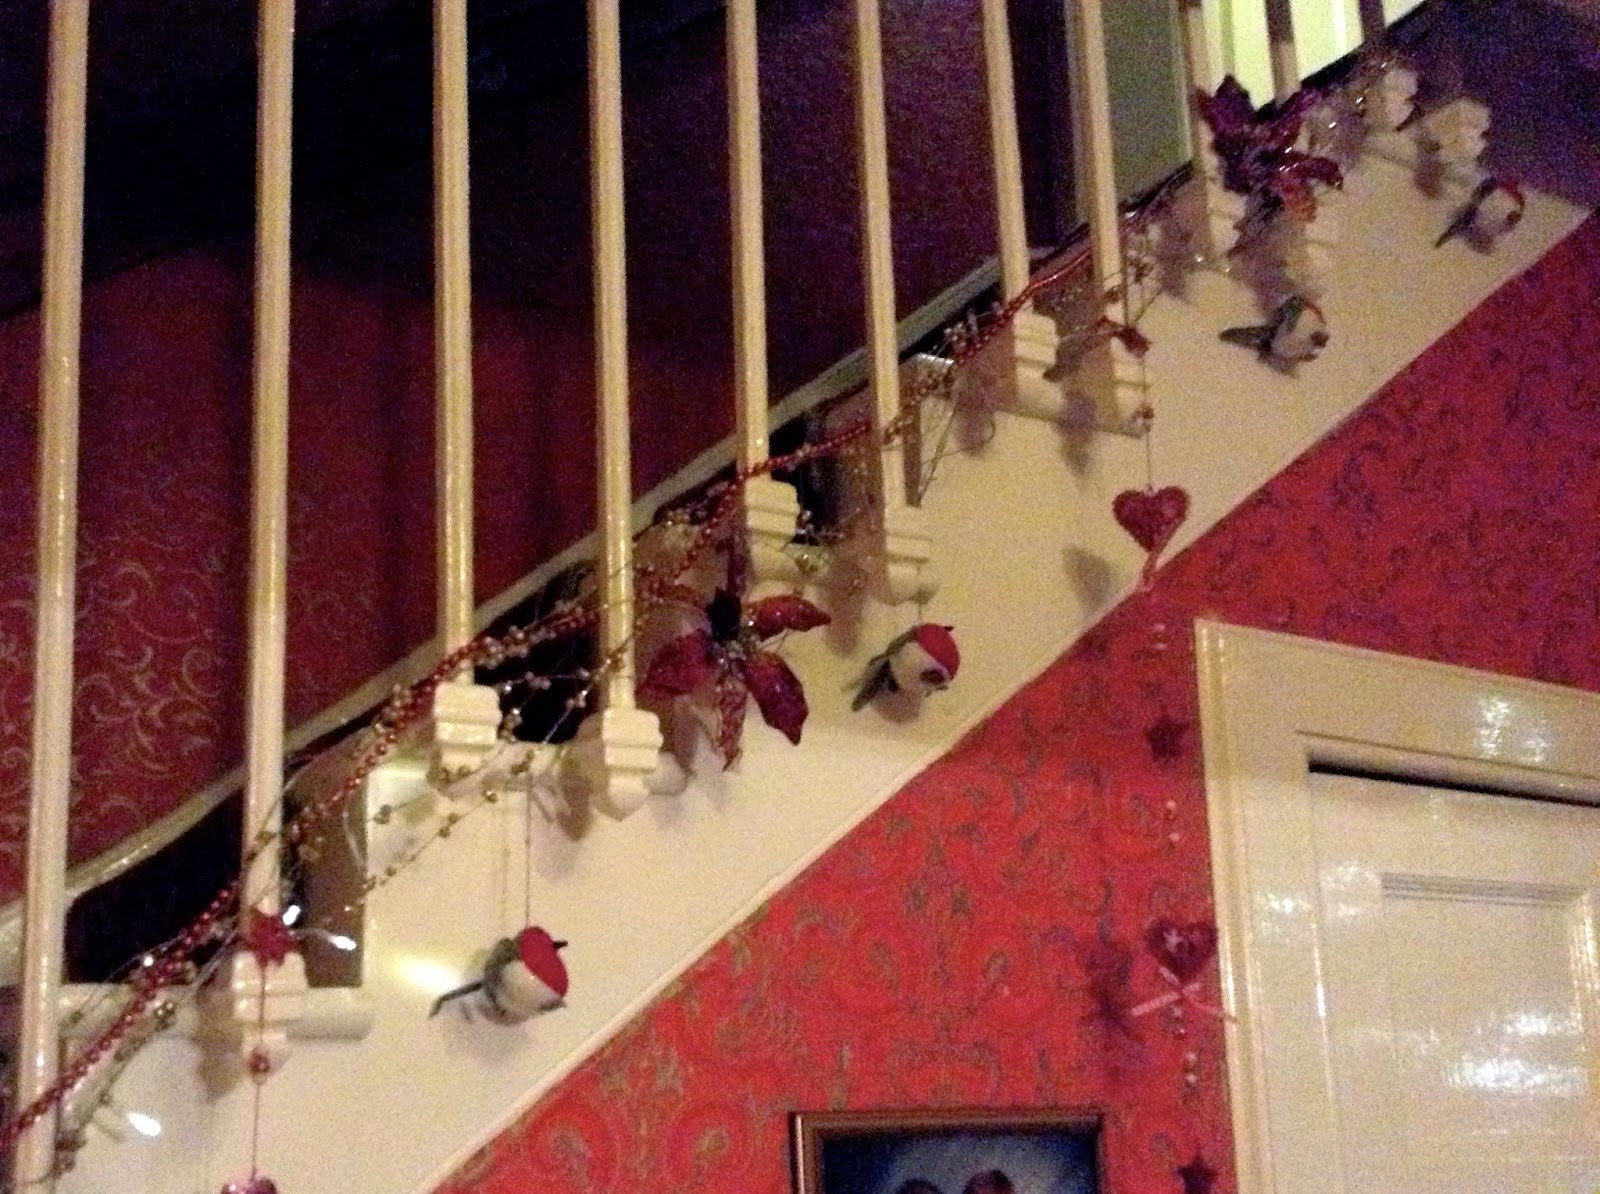 Christmas decorations on stairs - robins, flowers, red & gold beading and dangling hearts